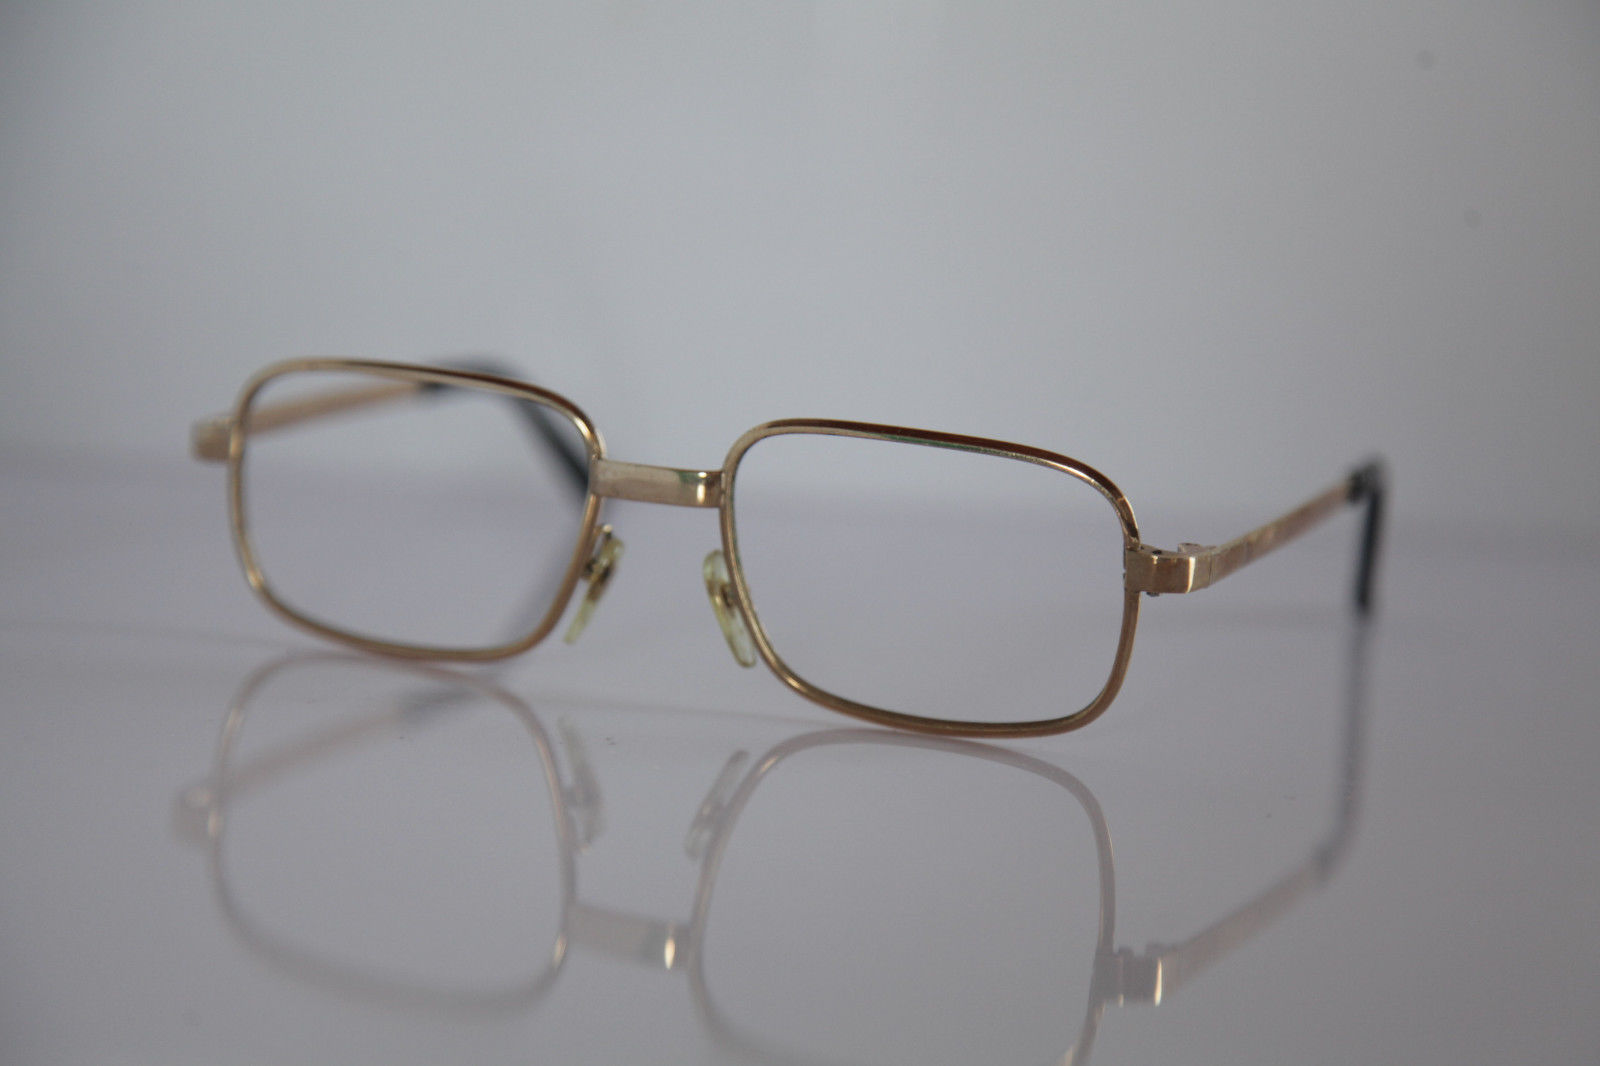 EPIC GILT ARG Eyewear, Gold Frame.